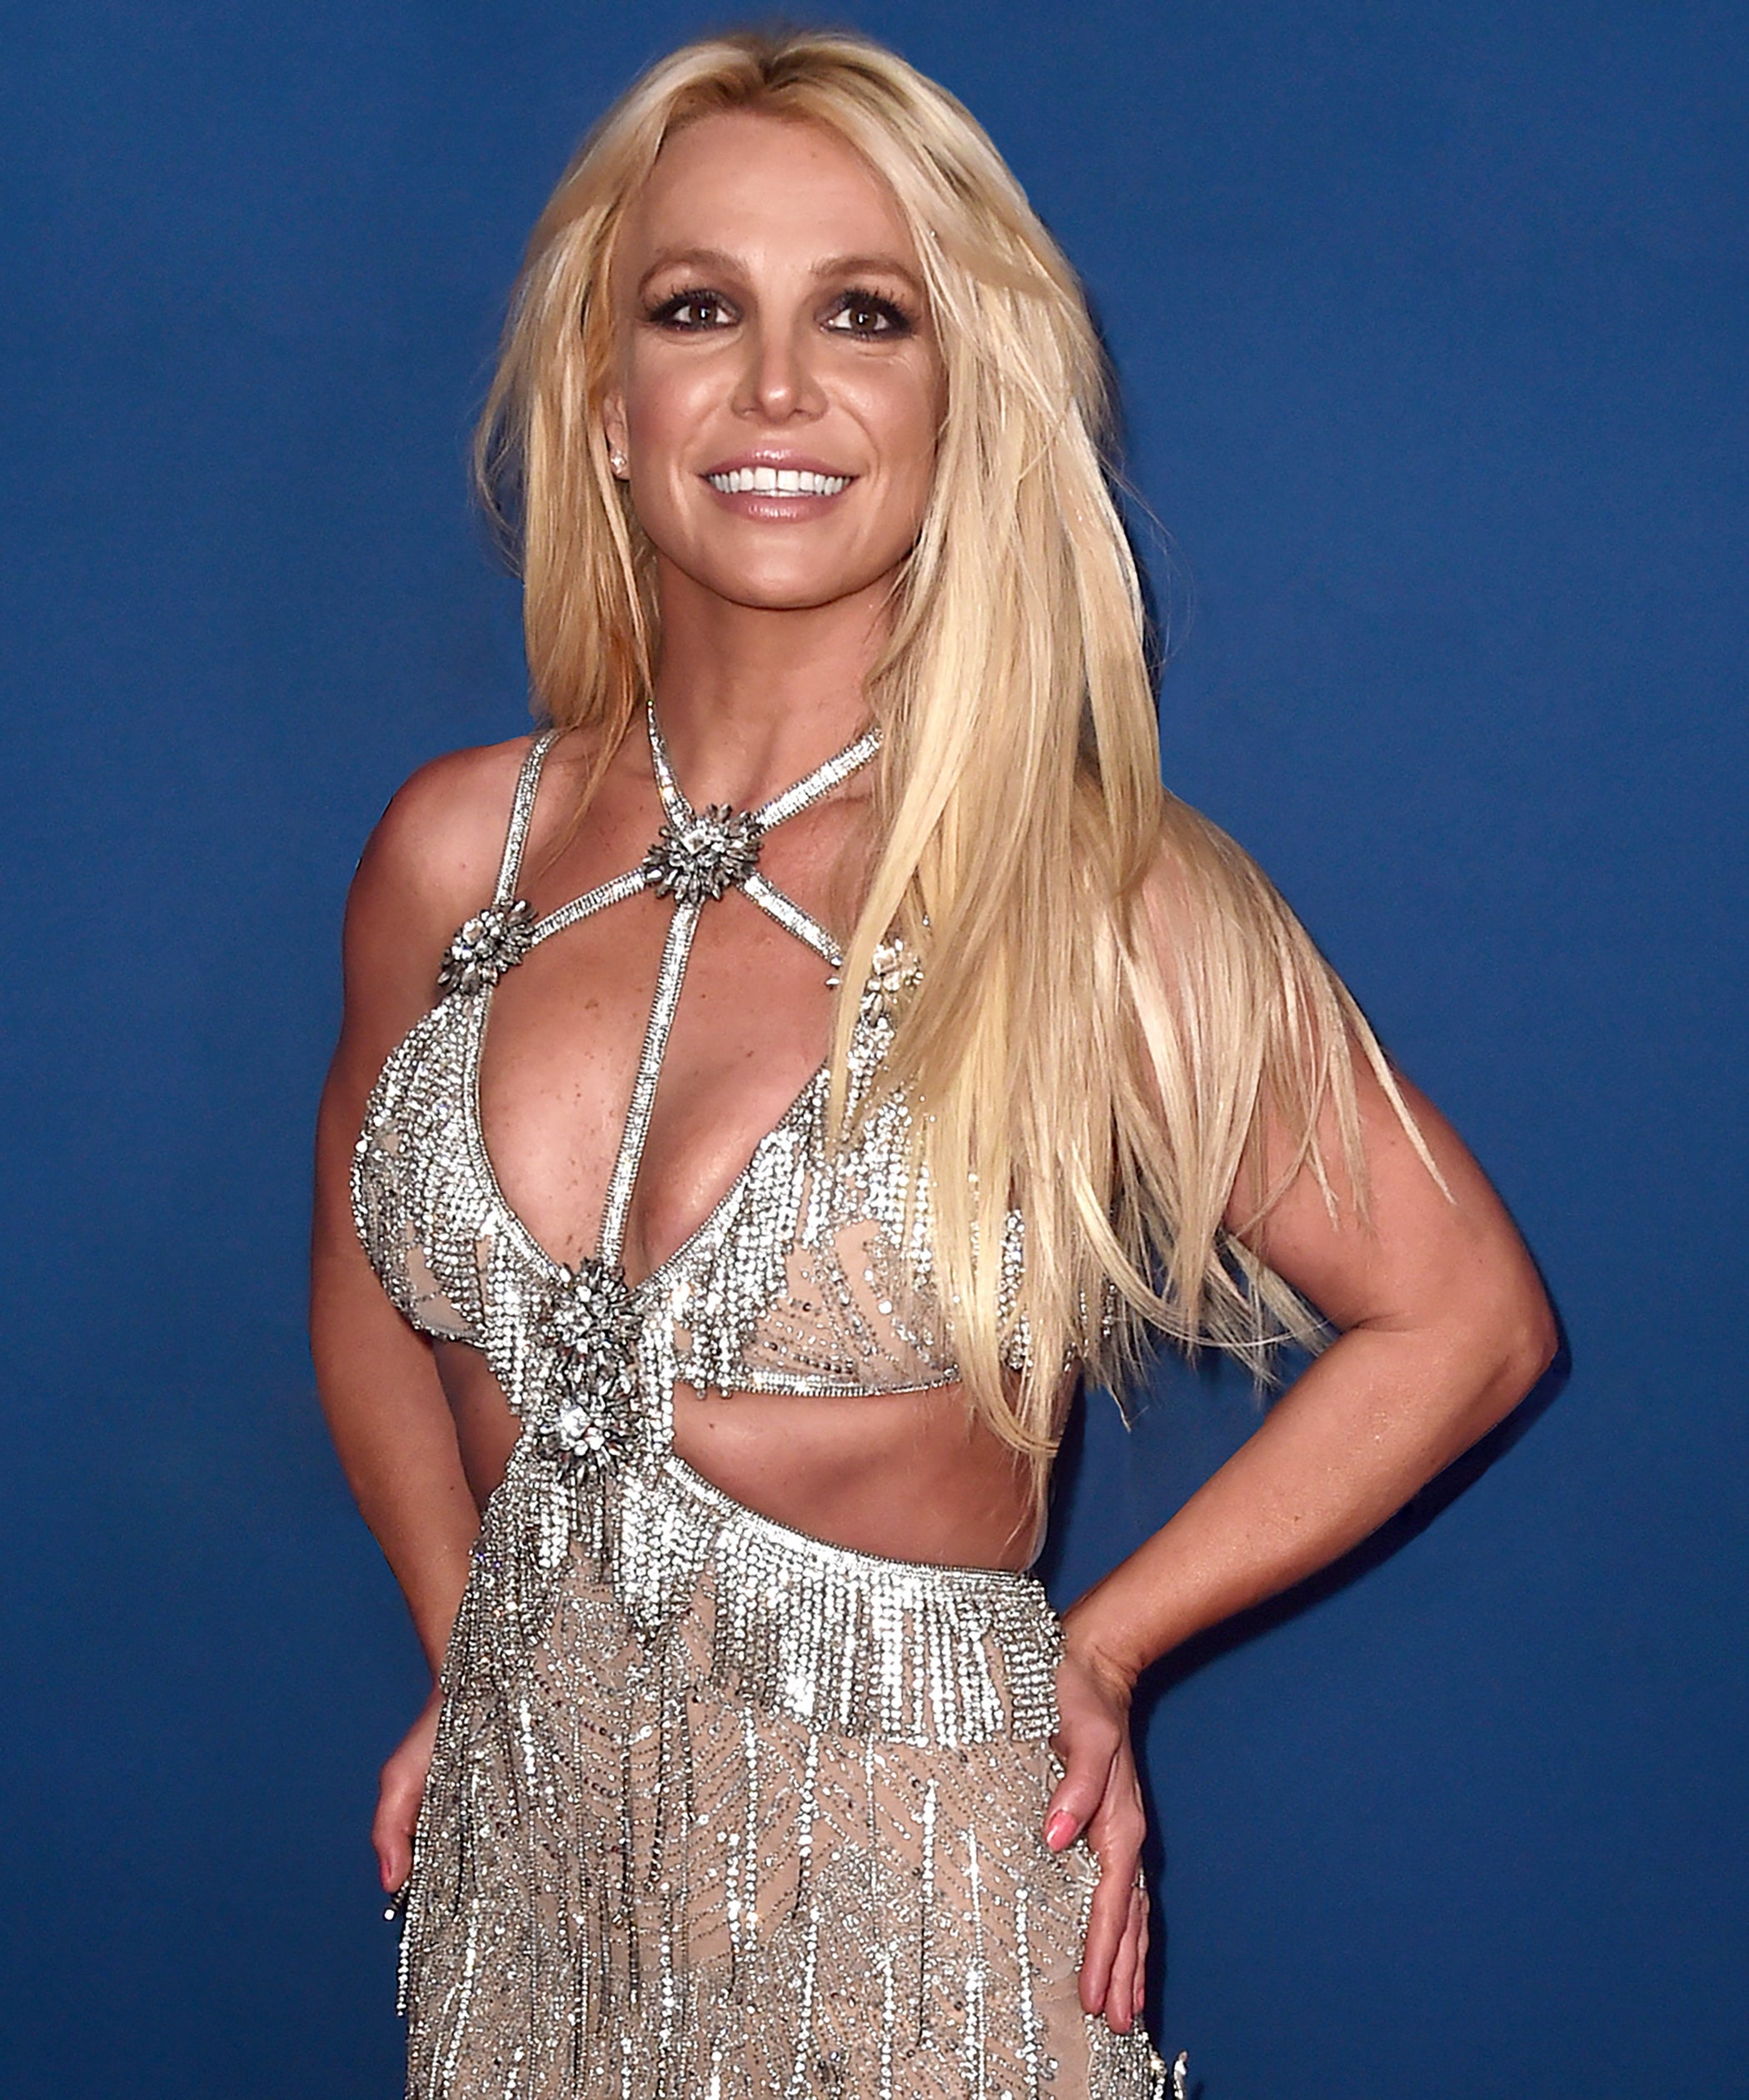 Britney Spears Shares Real Reason For Having Bangs